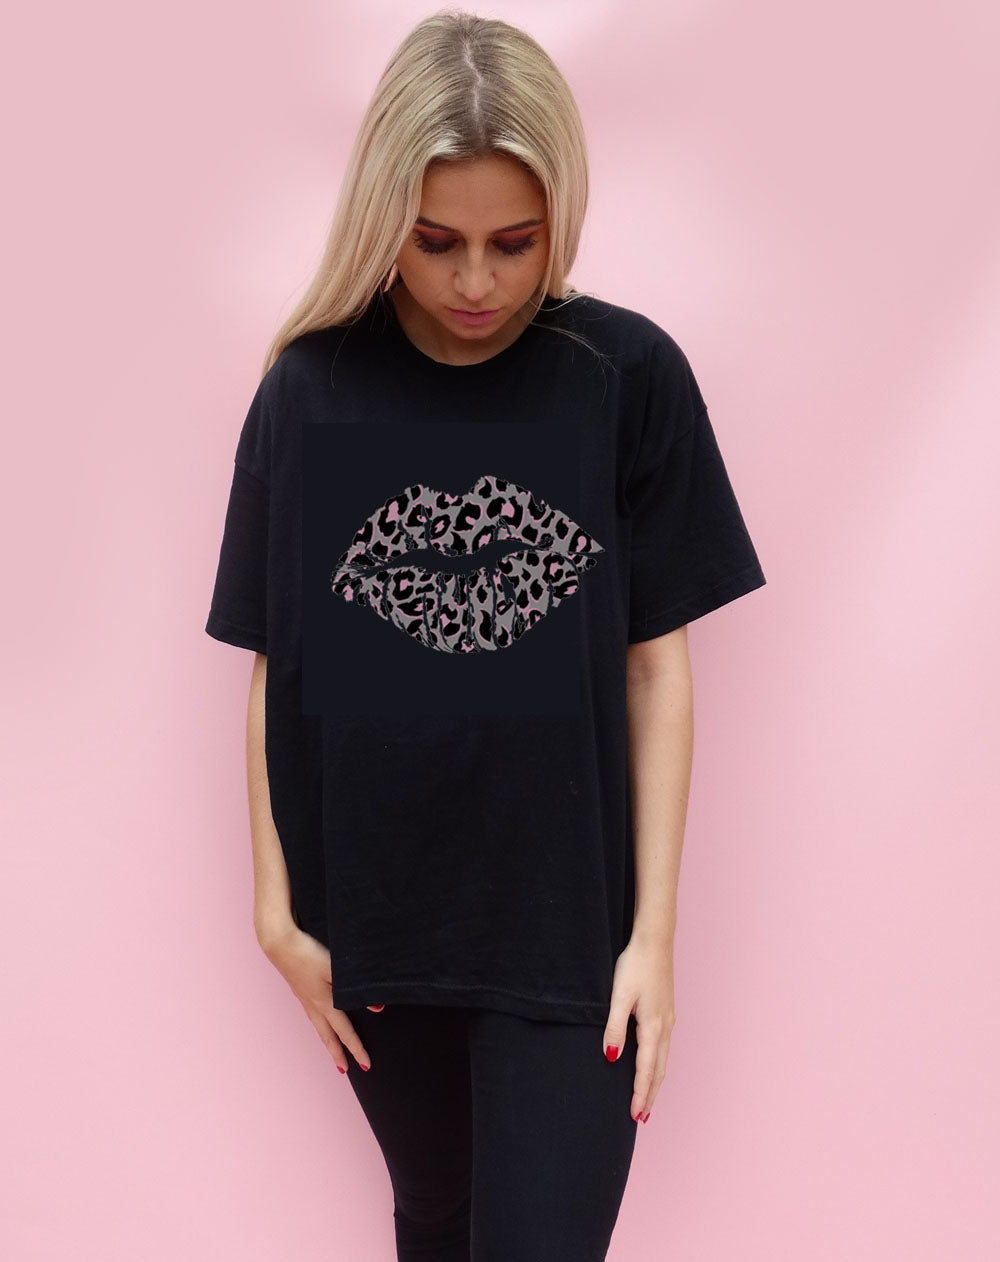 Pink and Grey Leopard Print Lip Motif T-shirt Top in Black